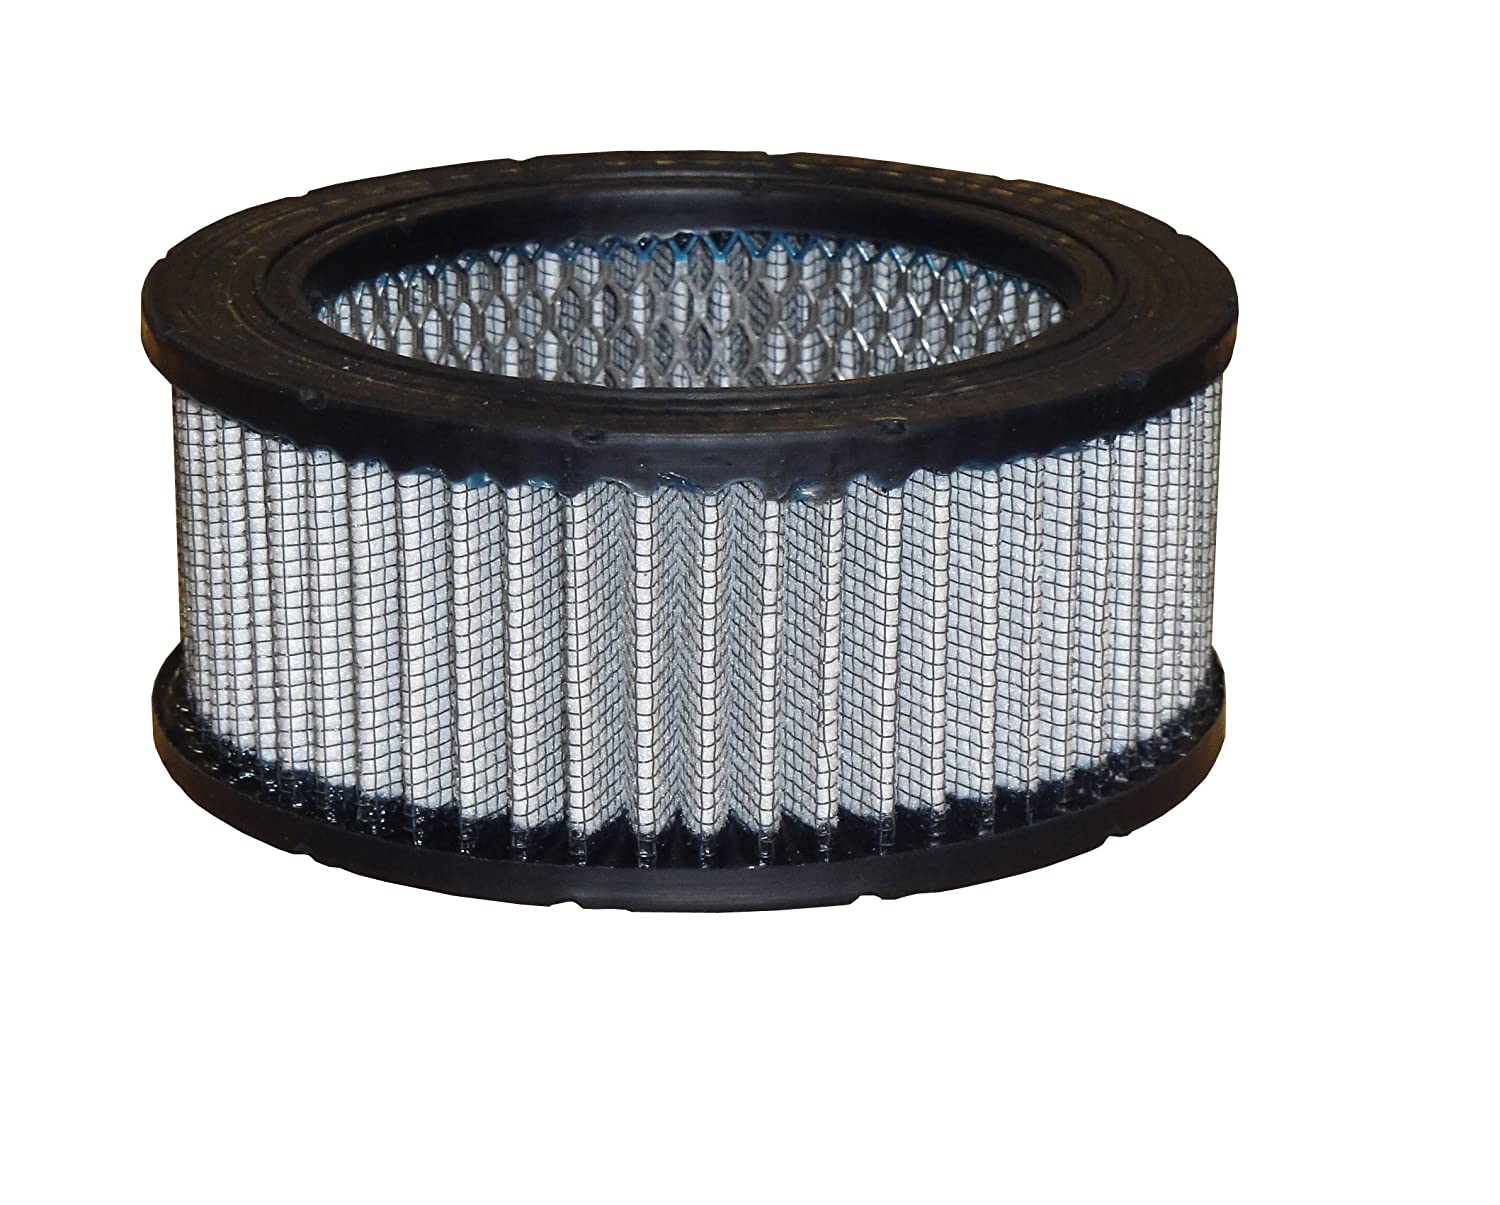 Solberg 32-03 Polyester Filter 2- Cartridge Super Ranking TOP9 special price Blower Replacement